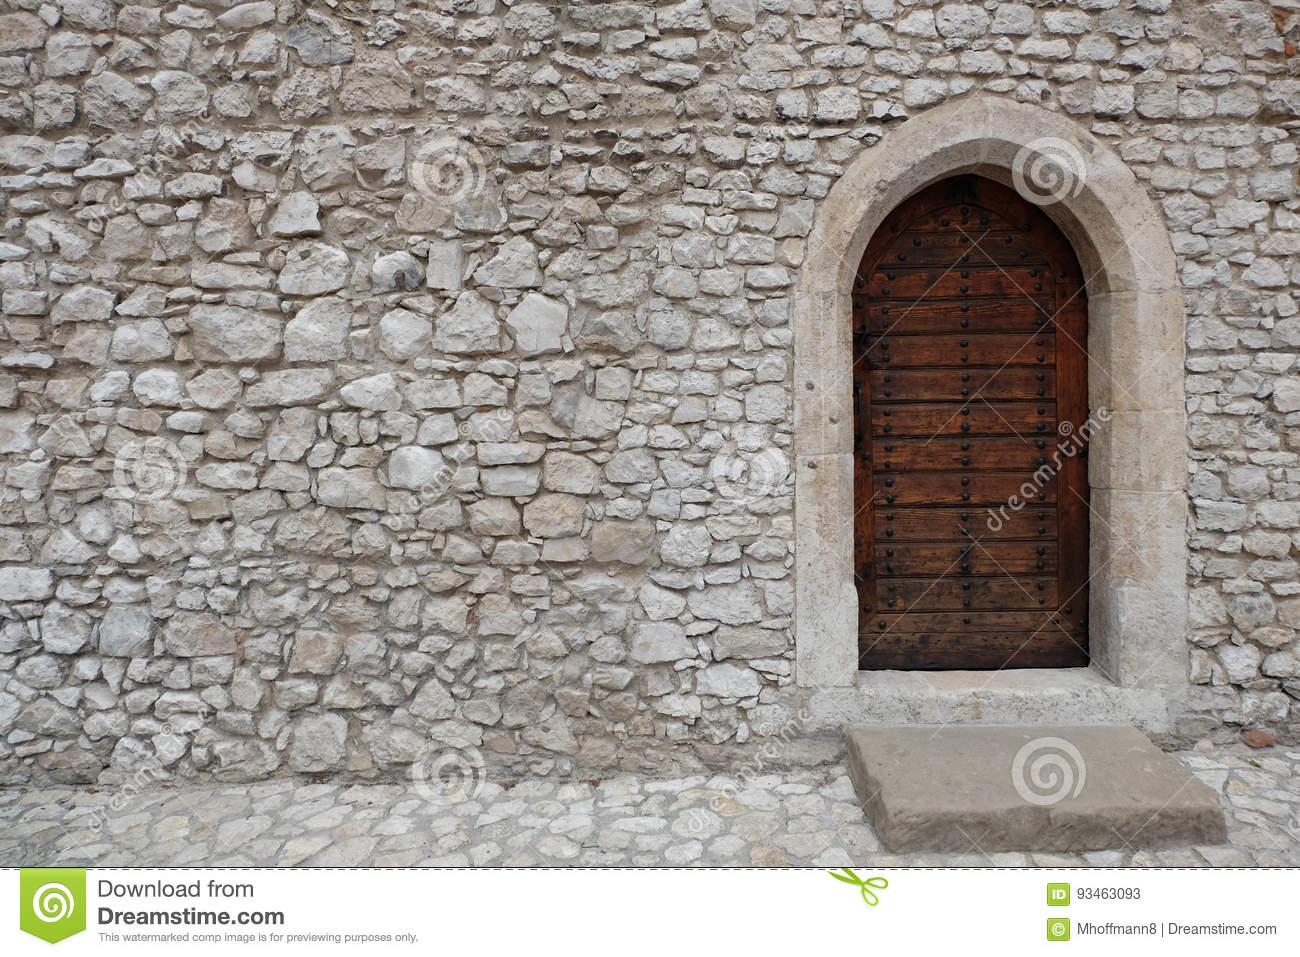 Fortress or castle wall made of stacked stone blocks and a wooden door with gothic style pointed arch